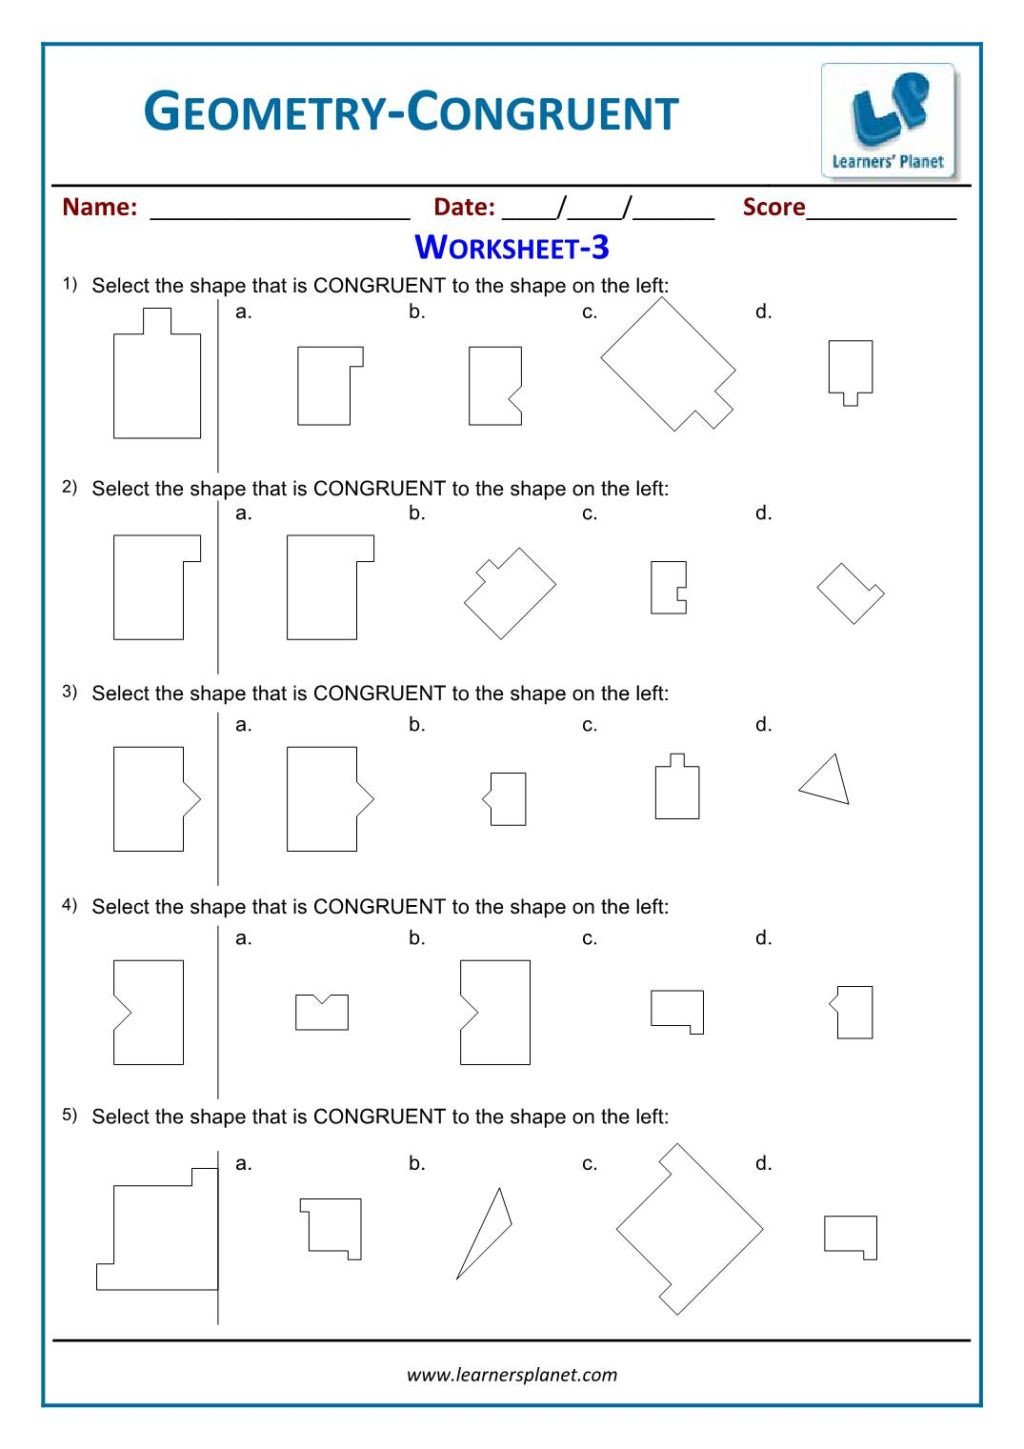 cbse class 3 geometry worksheets online math practice tests 4